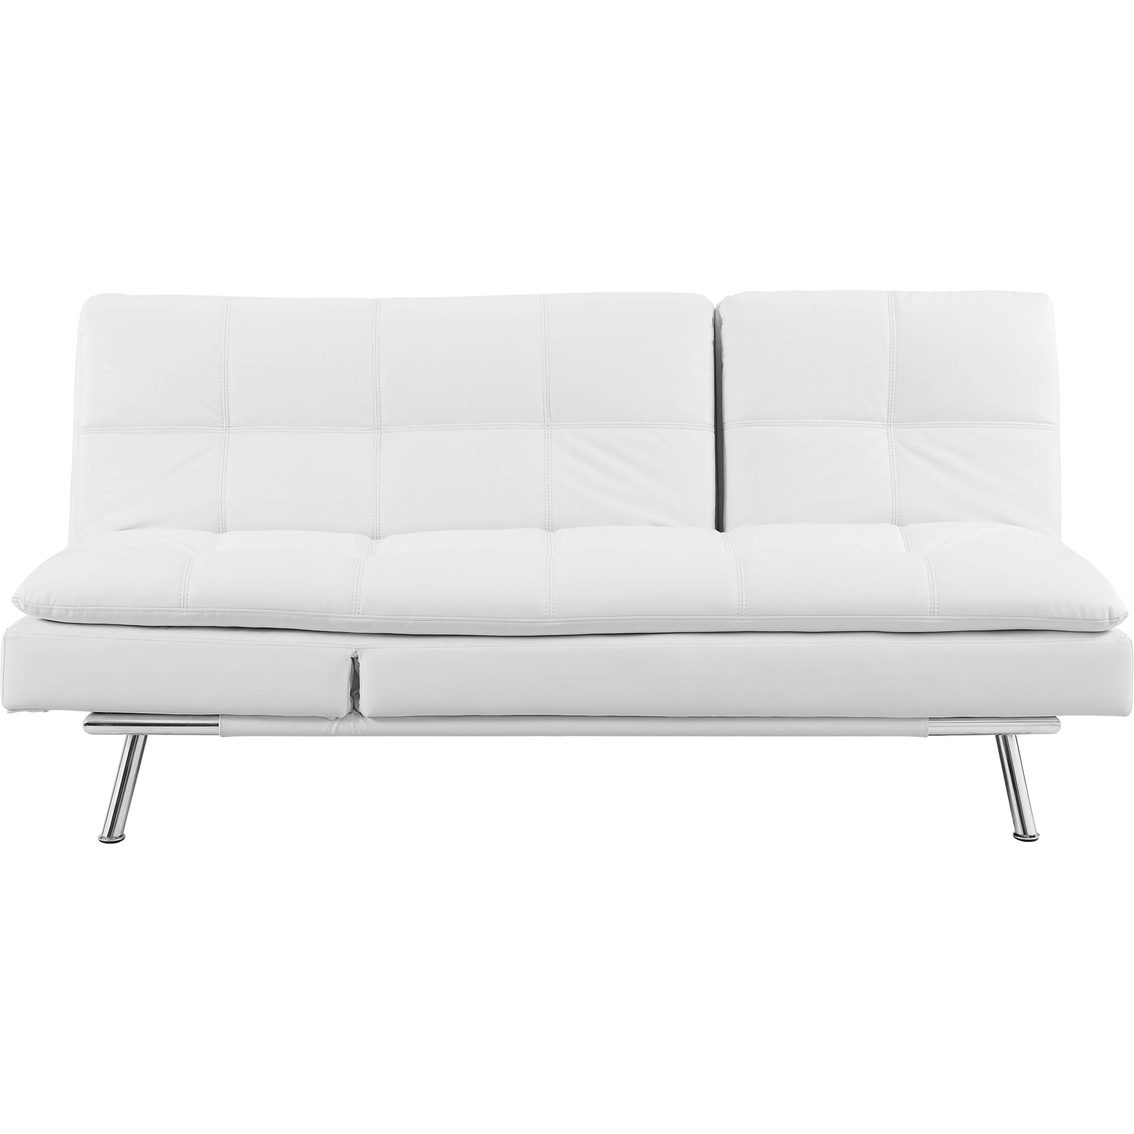 Serta palermo convertible white leather sleeper chaise for Chaise convertible bed